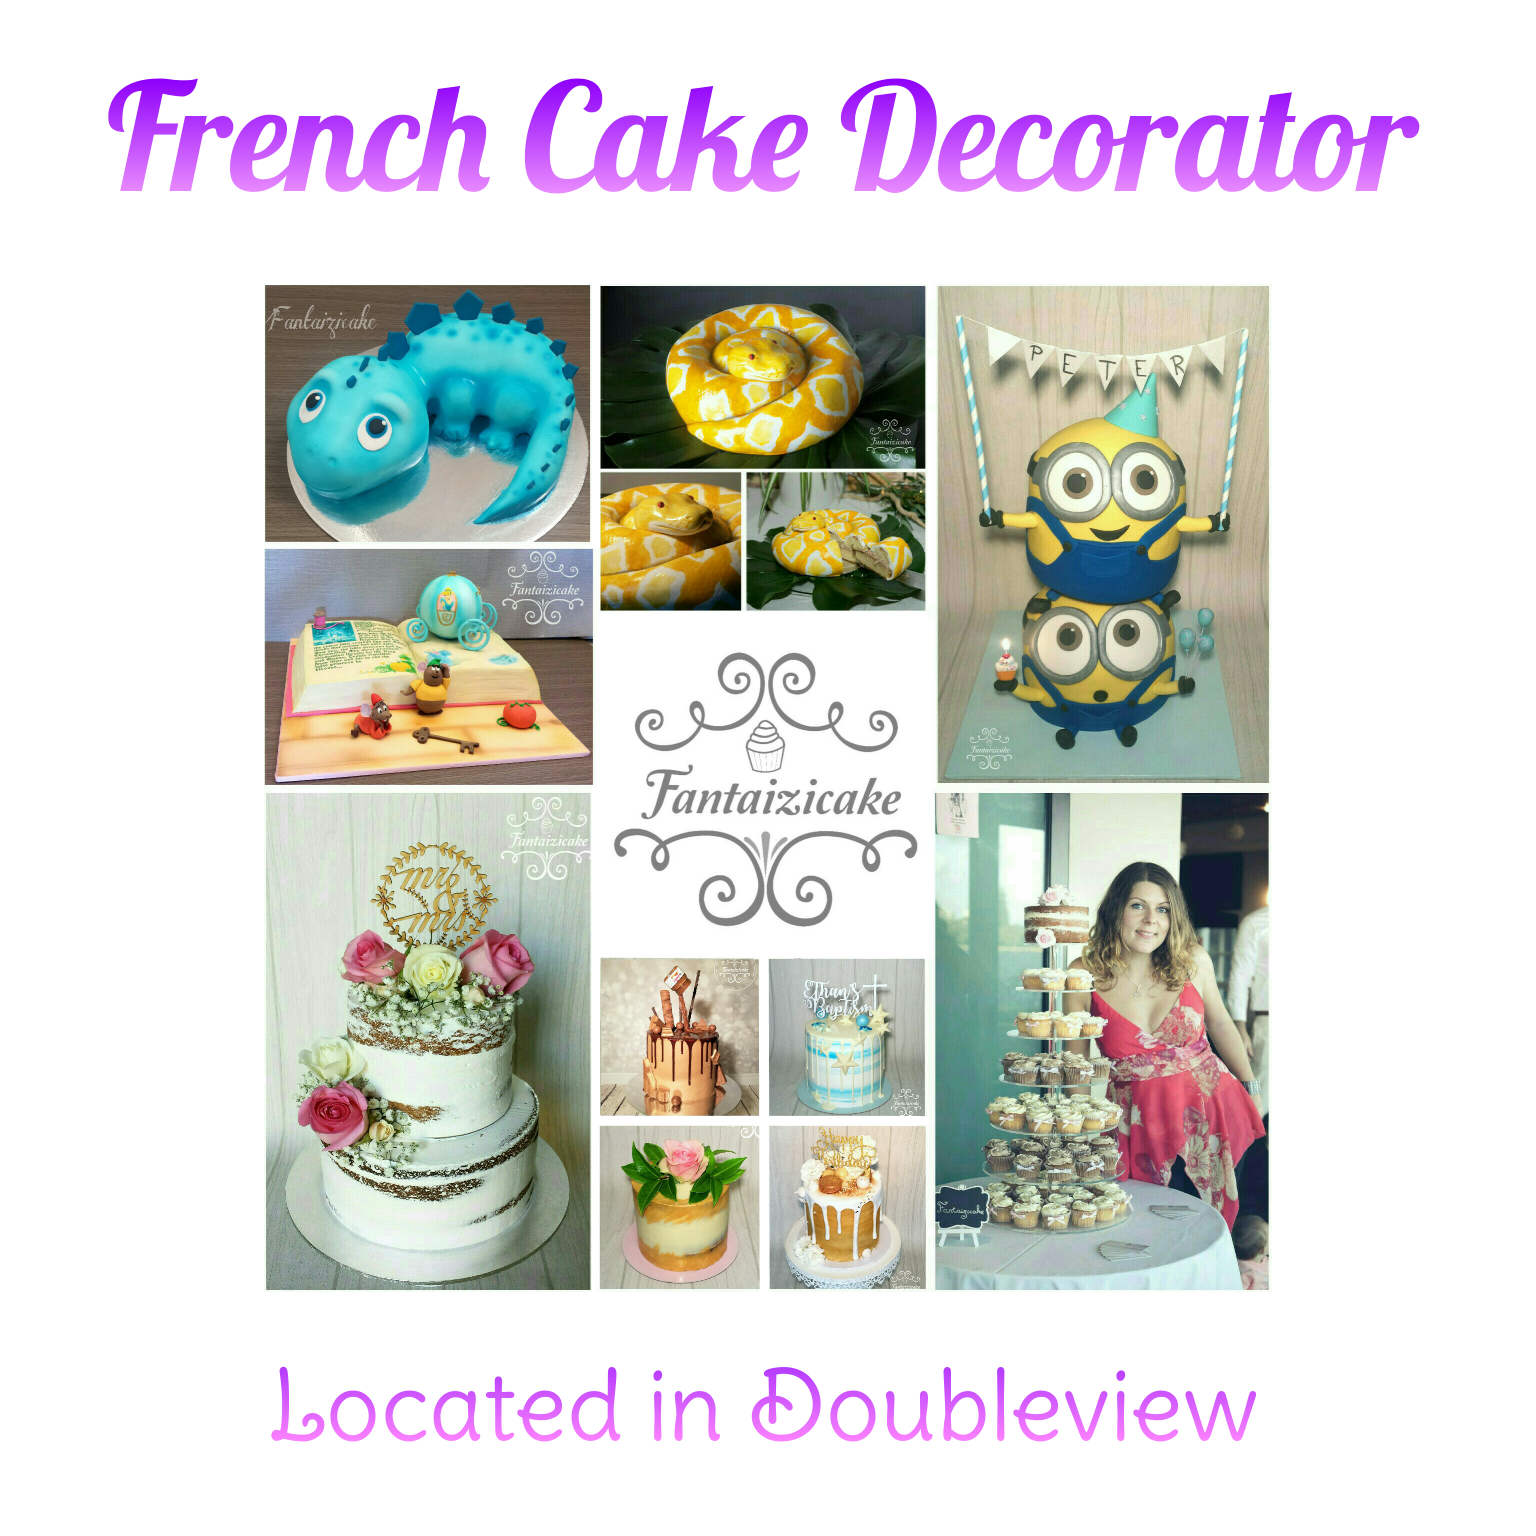 French cake decorator